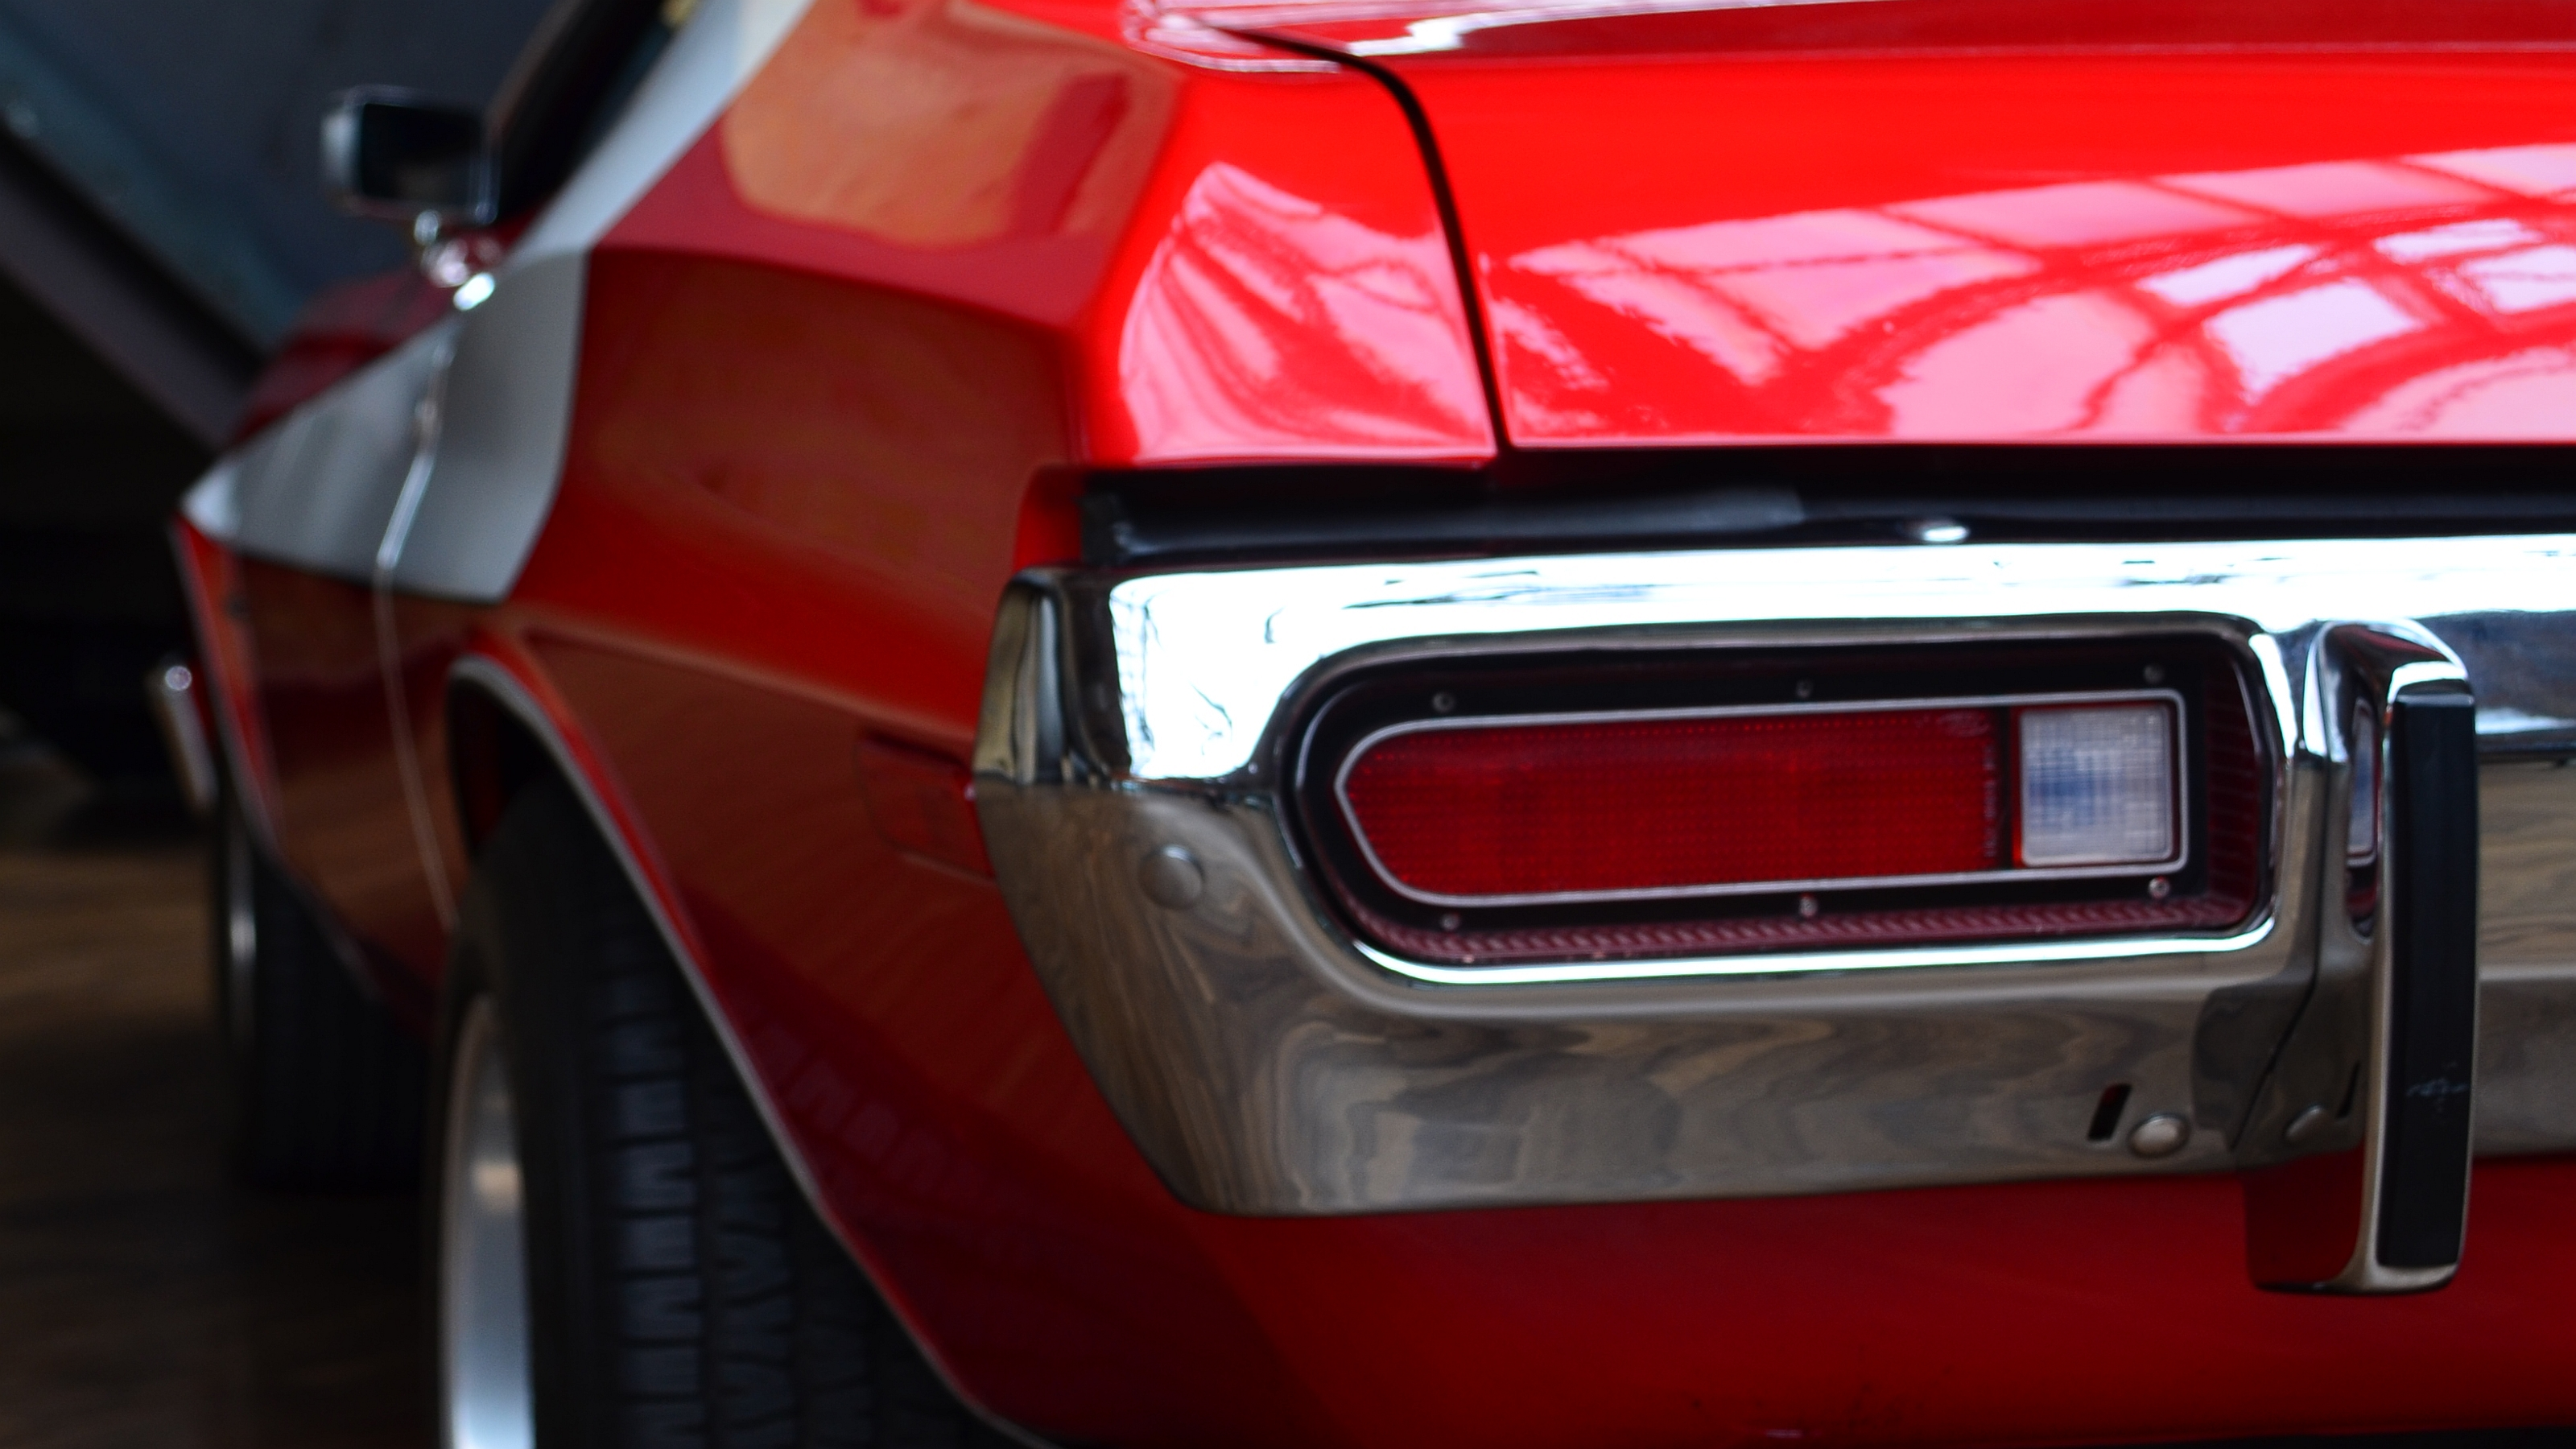 3200x1800 - Ford Torino Wallpapers 9